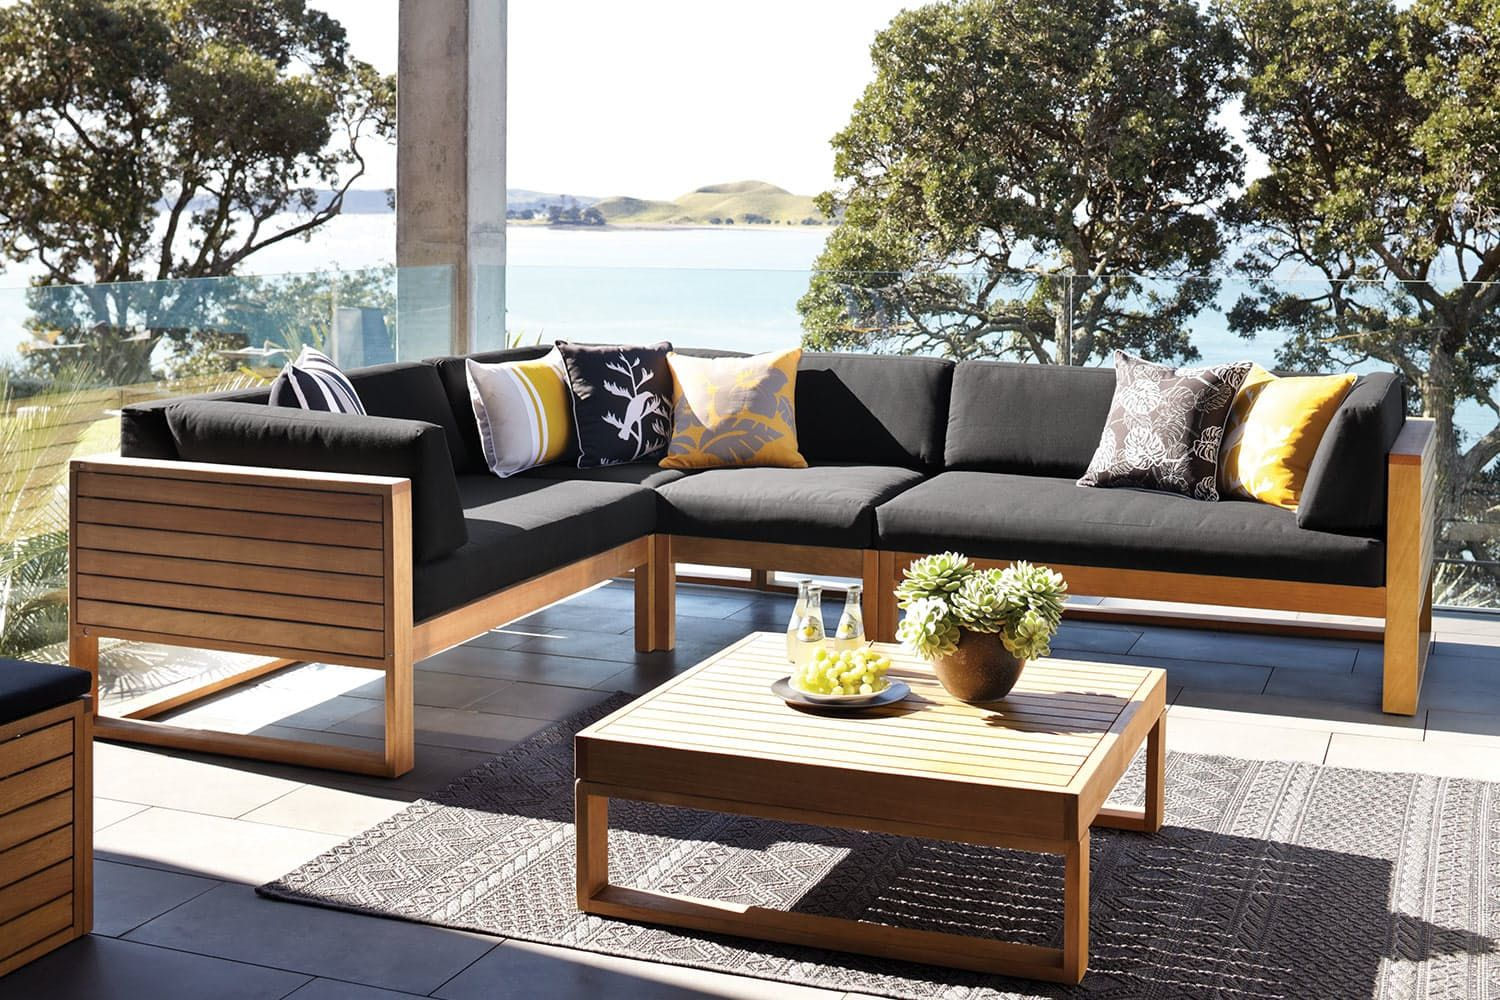 Superb Ventura Corner Outdoor Lounge Setting | Harvey Norman New Zealand Part 9